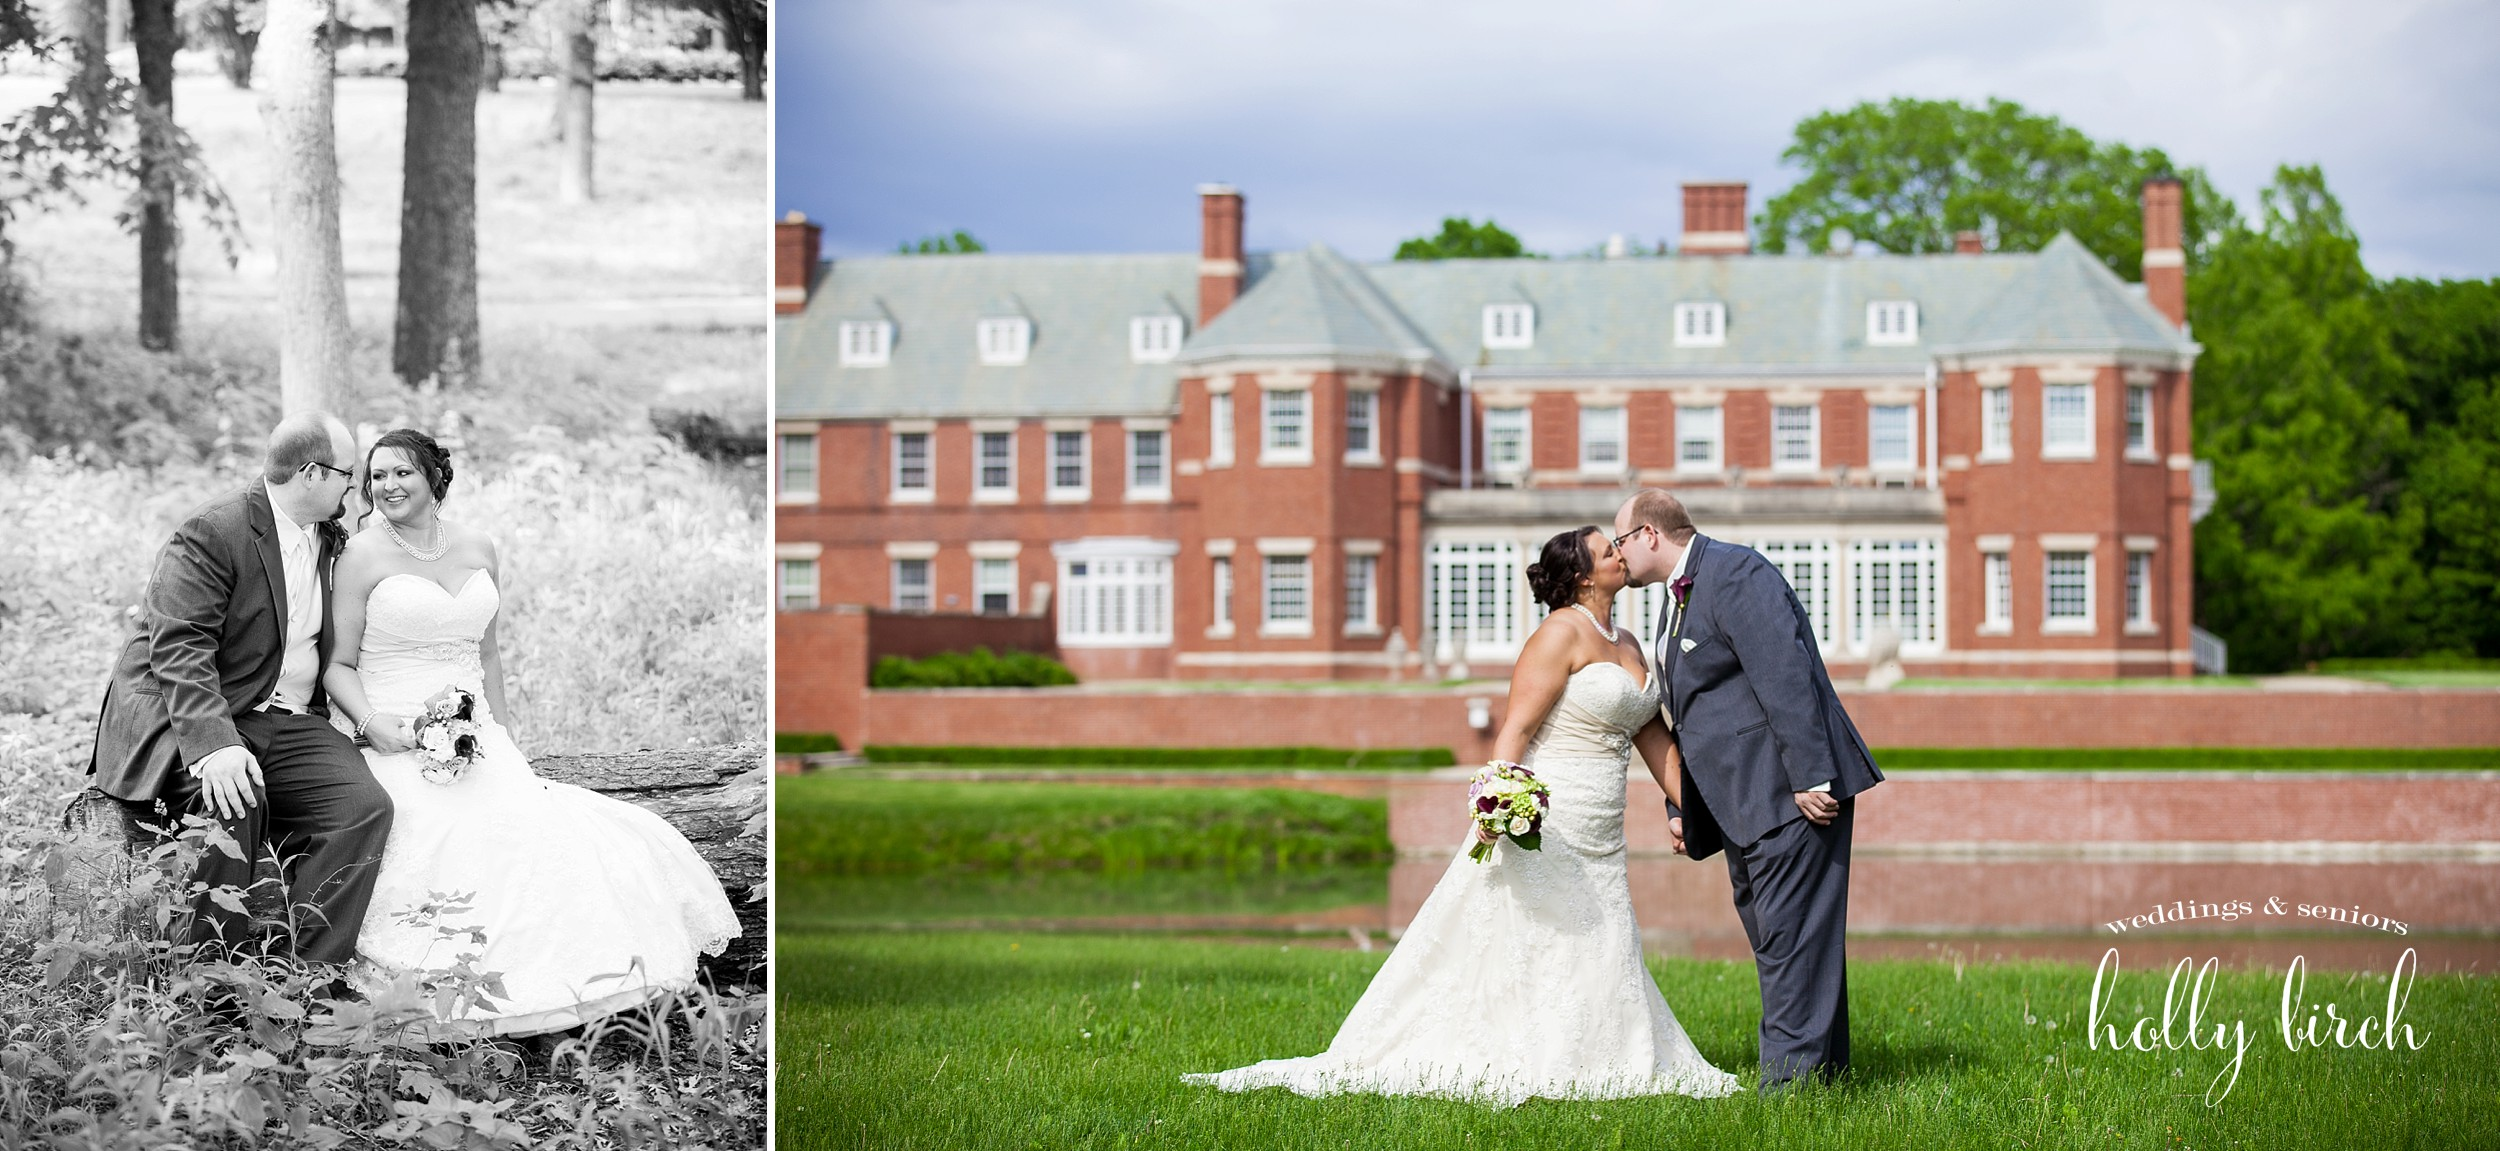 Allerton Mansion wedding pictures